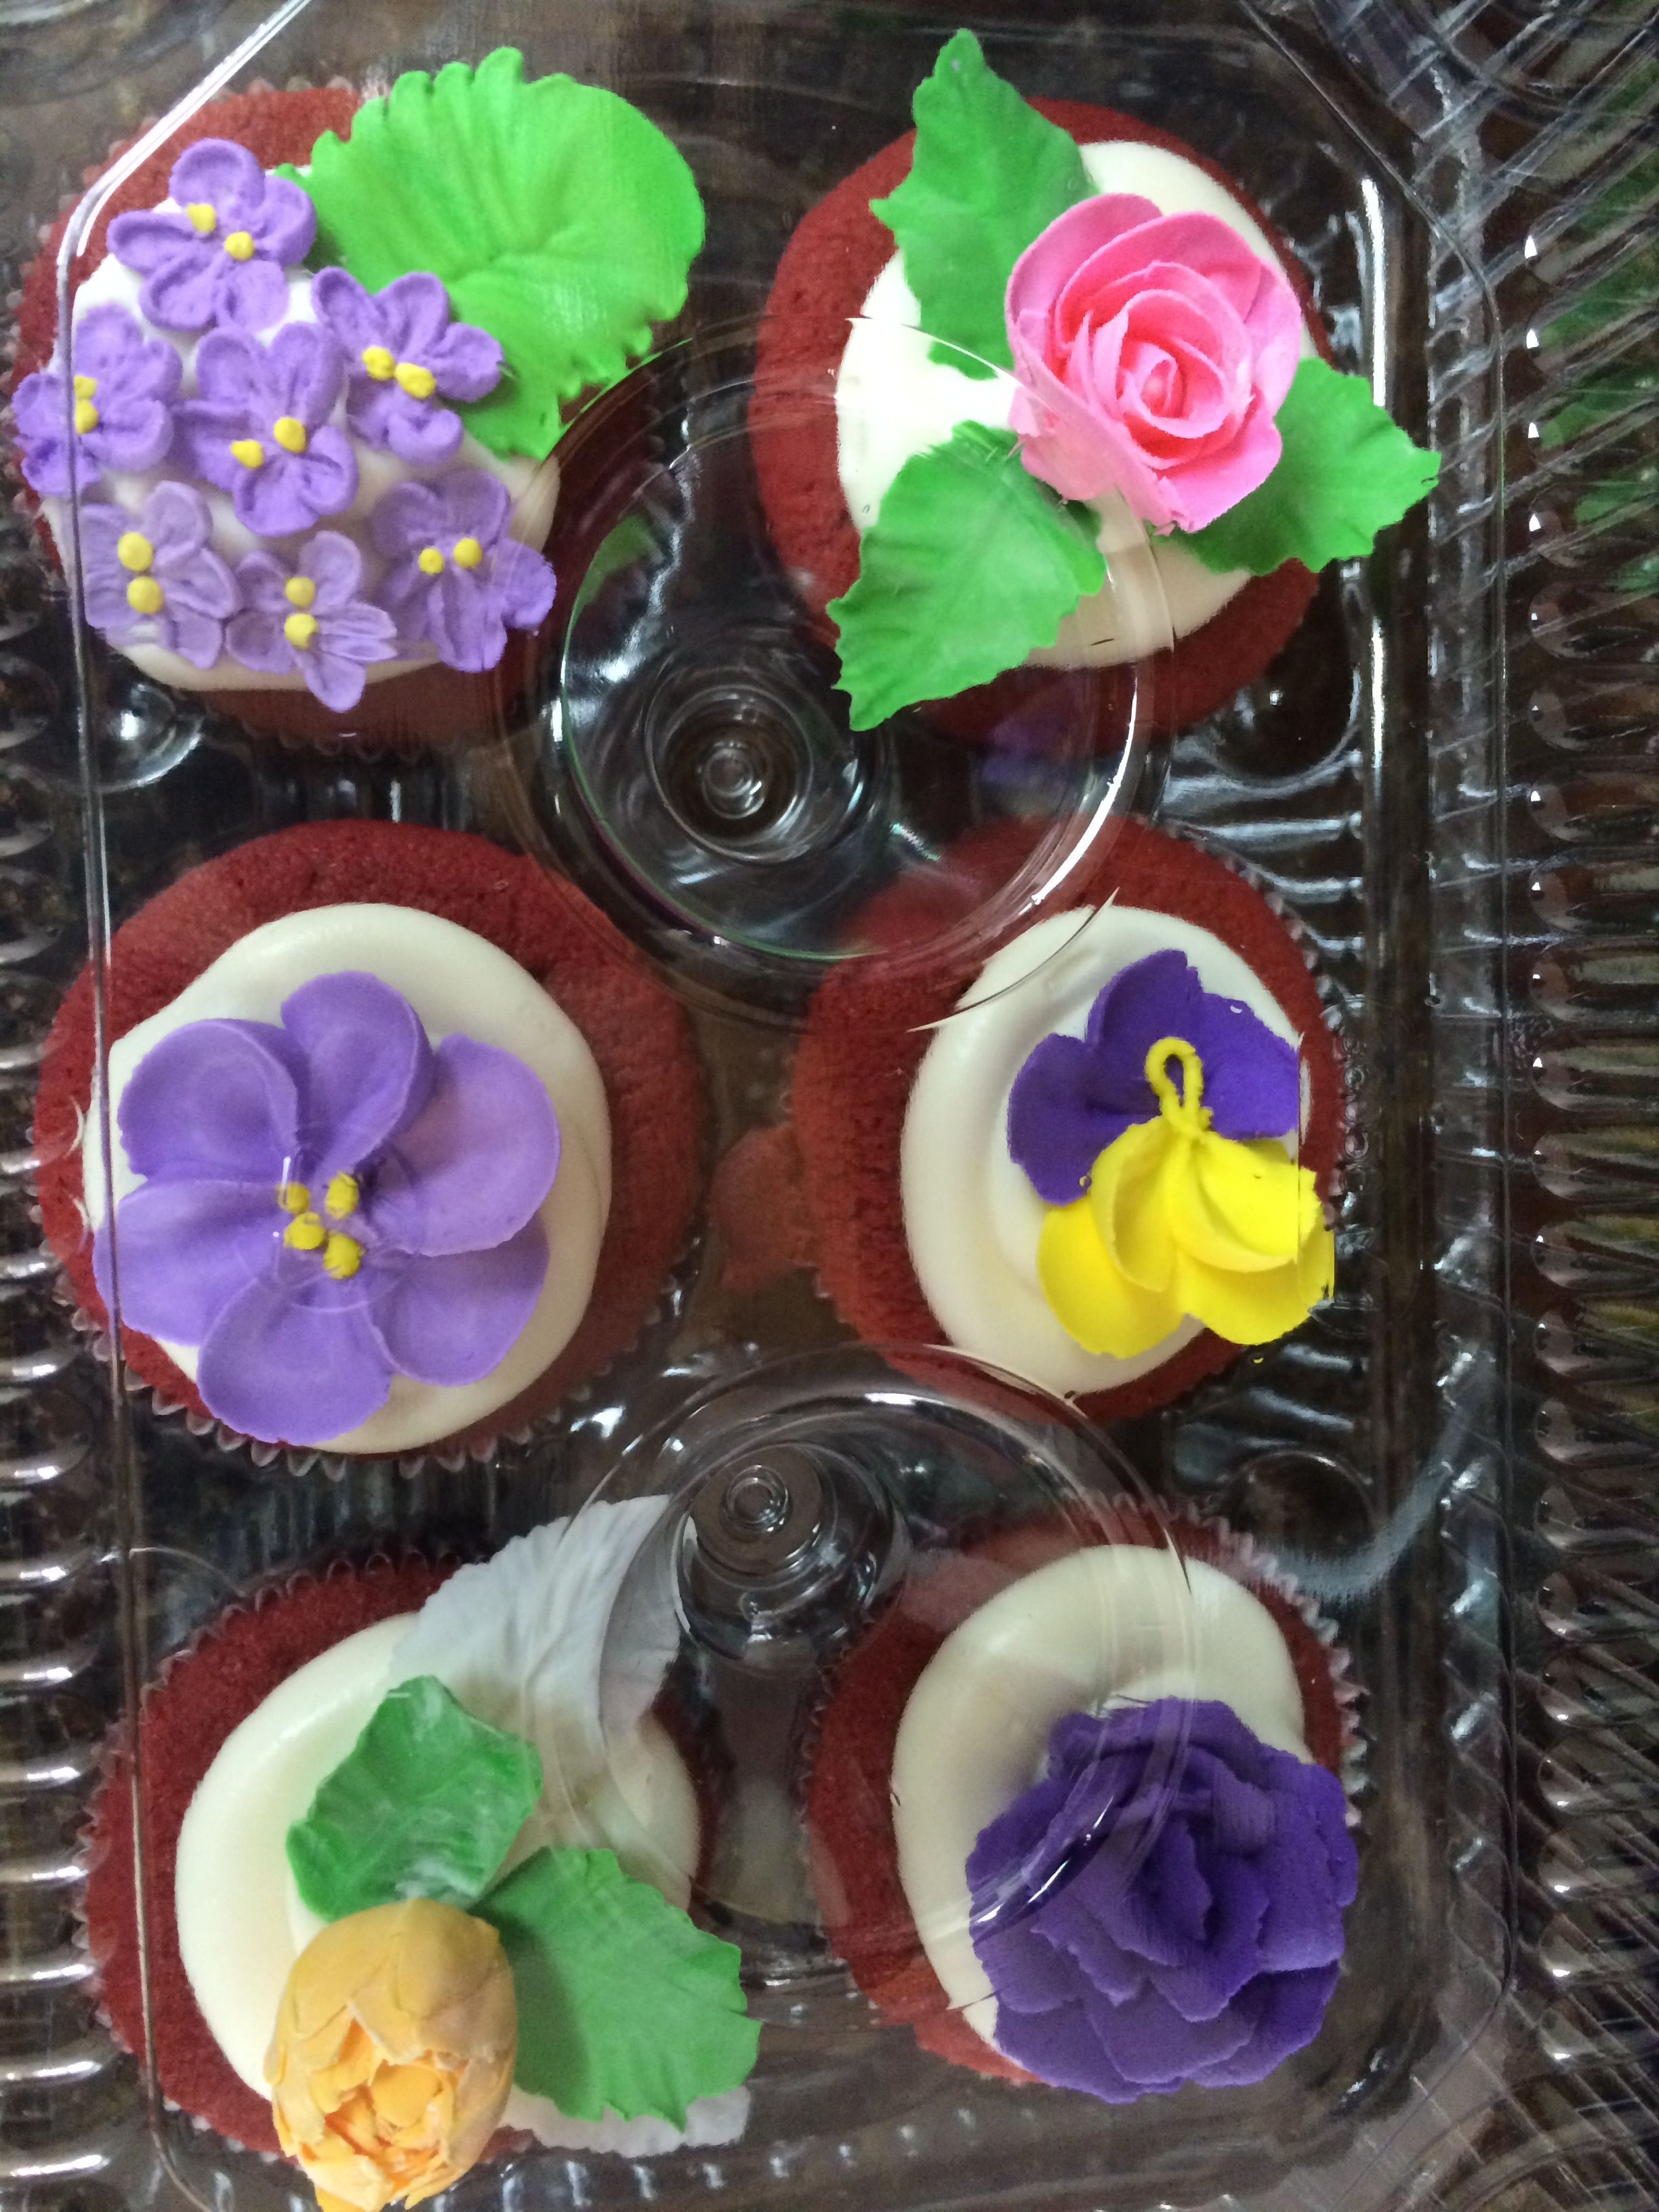 Red velvet cupcakes with him paste or royal icing flowers.